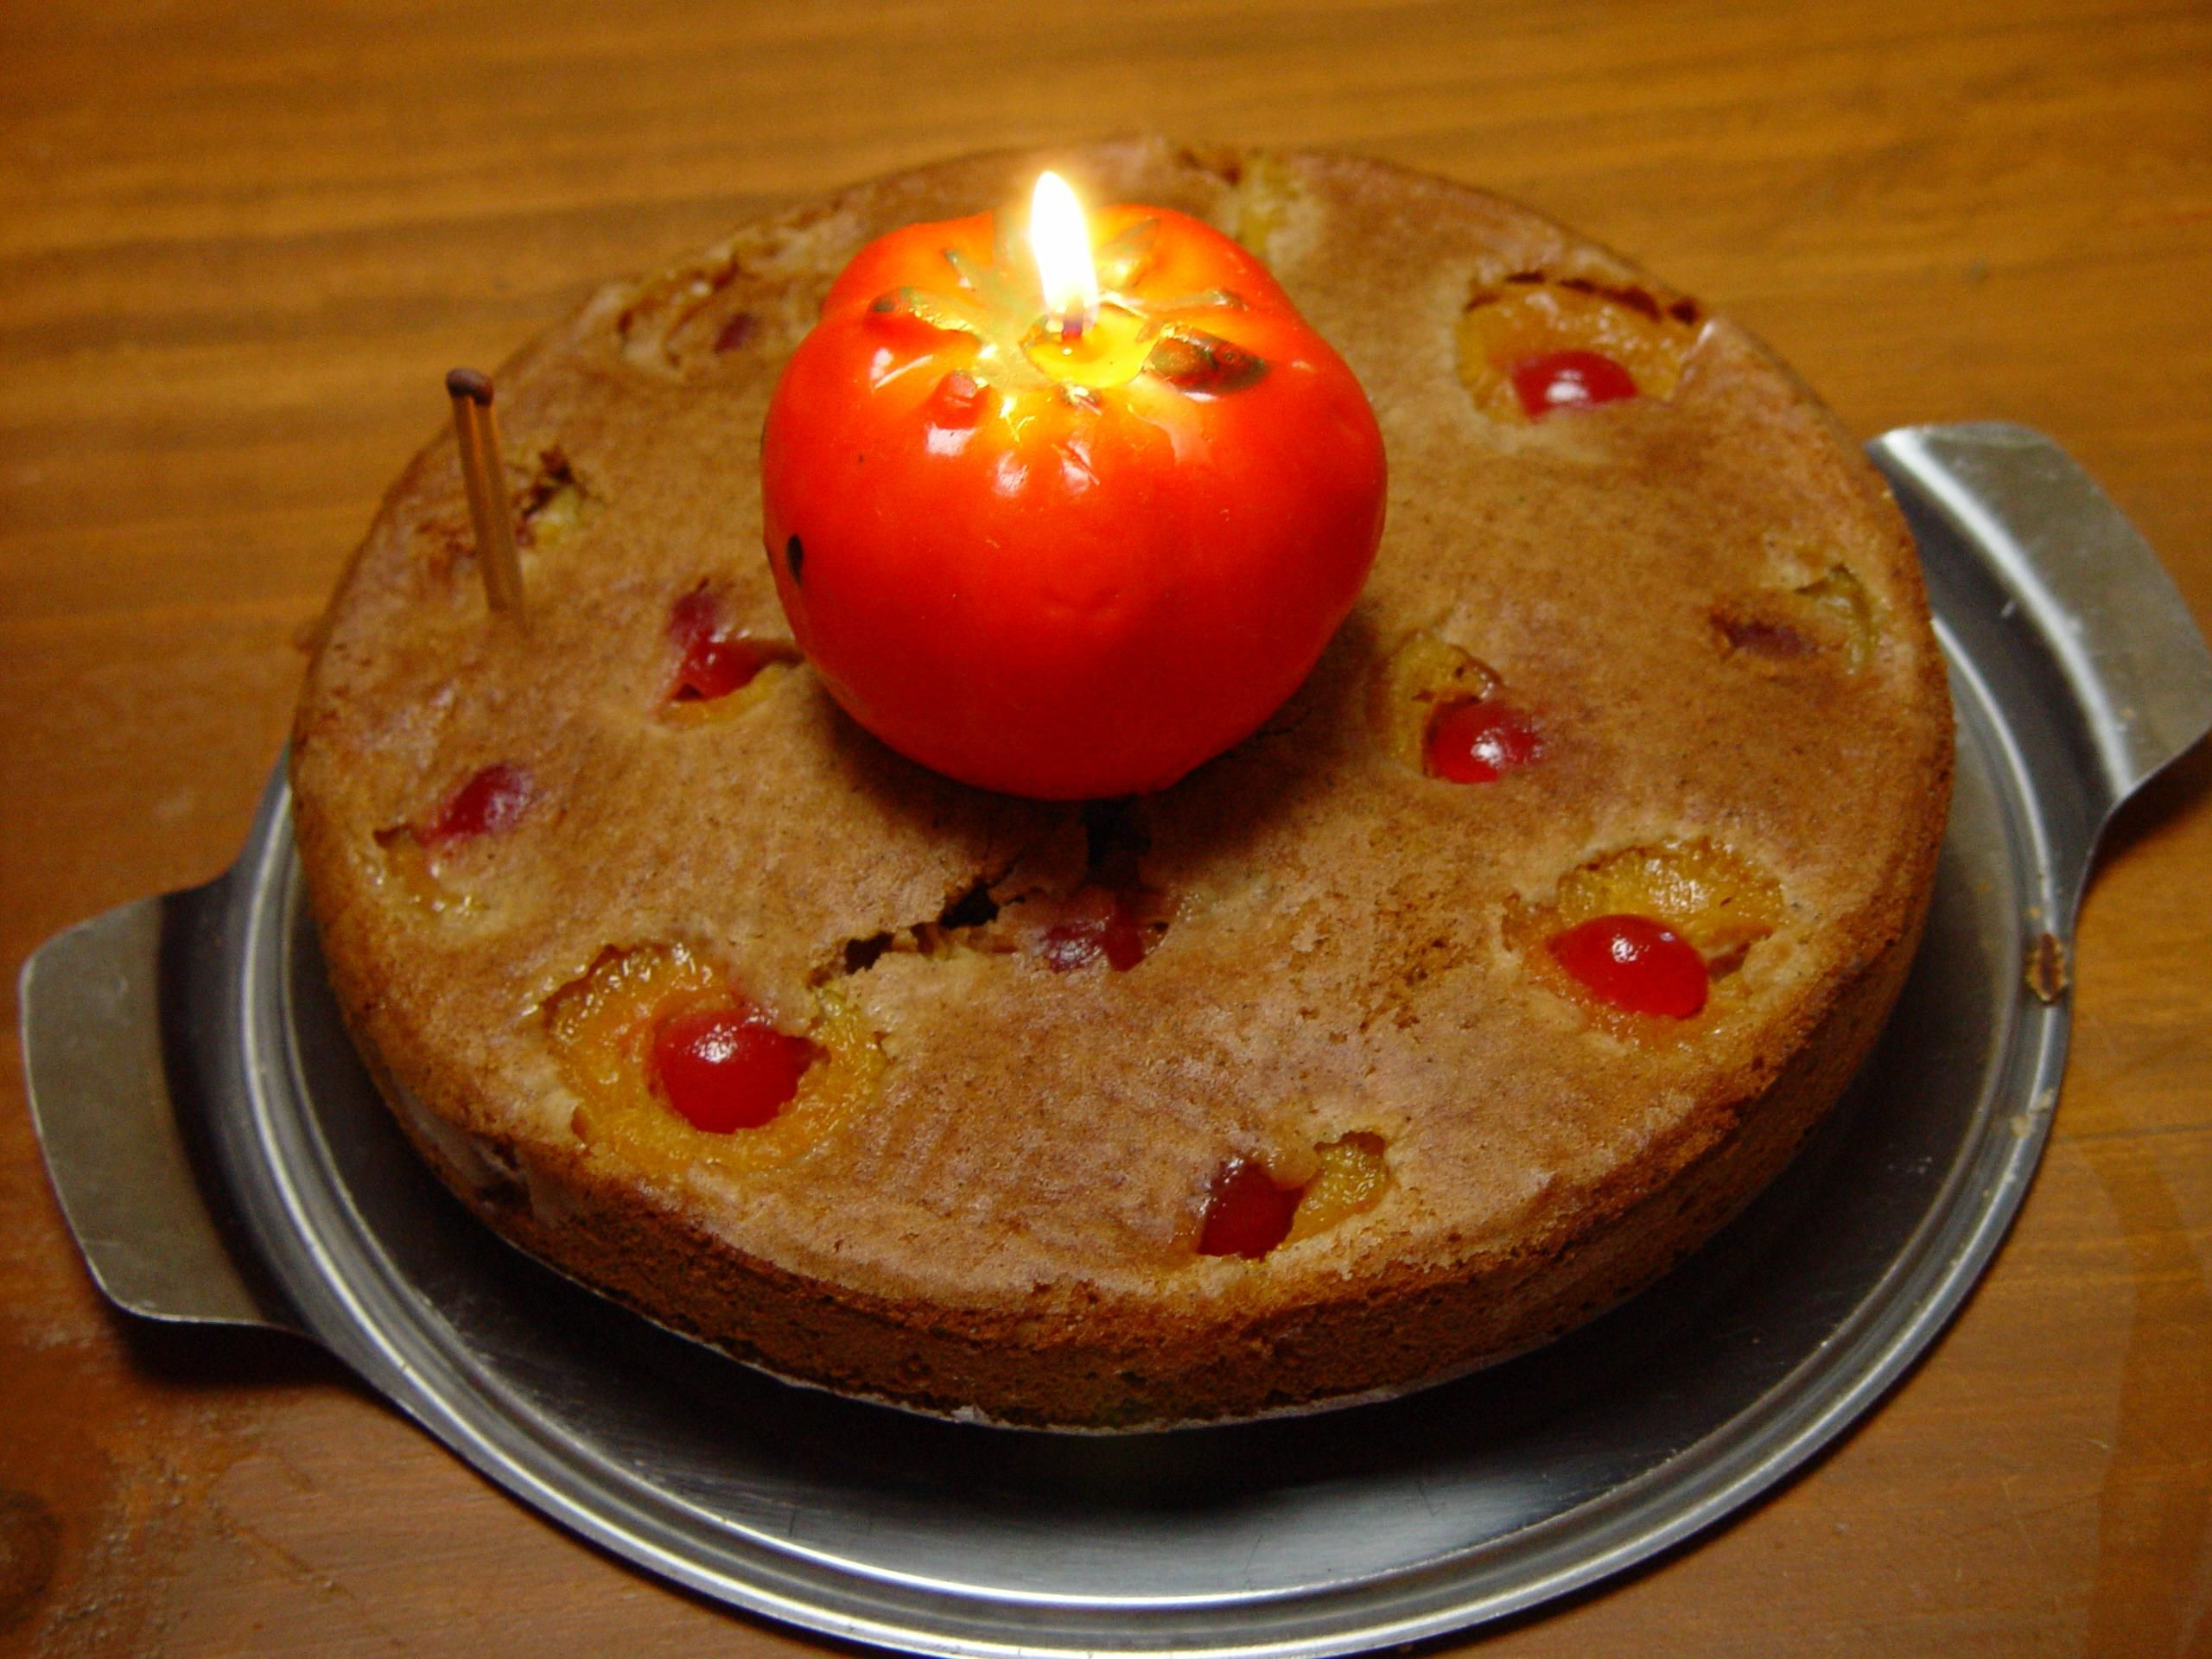 Cake Au Tomate Sechee Et Olive Noires Ans Fromage